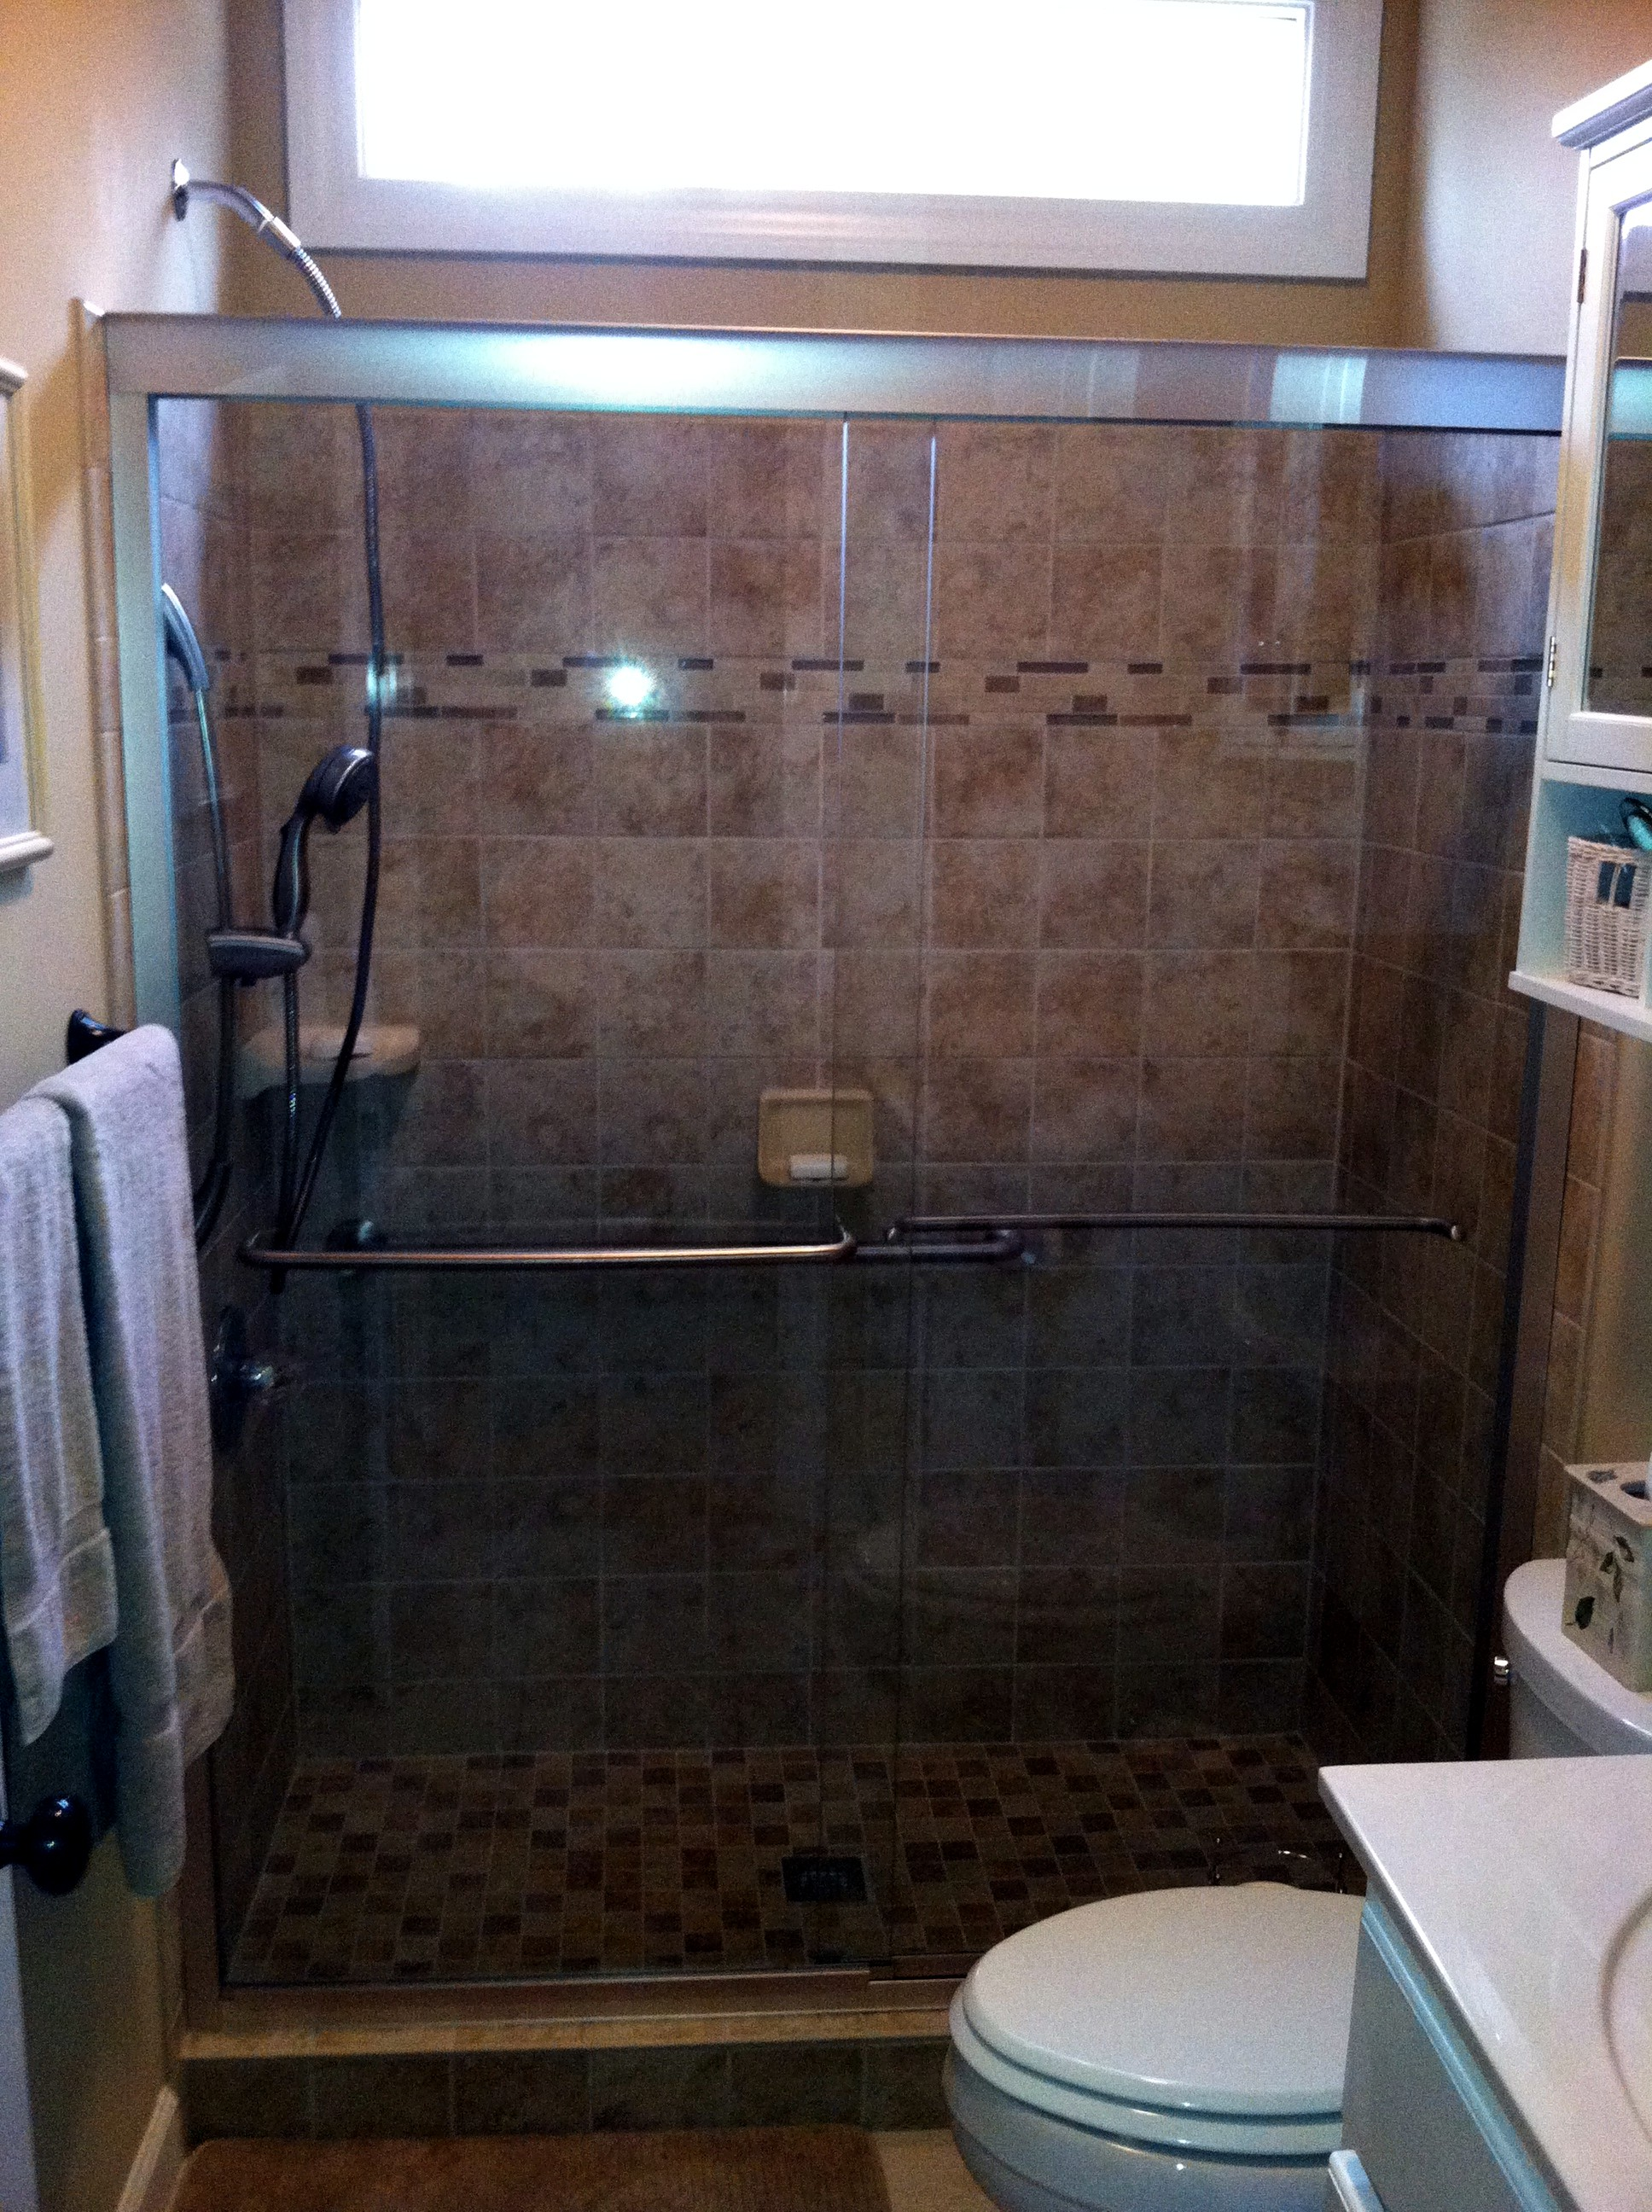 blueridge blairesville jasper handicap tub or shower conversion